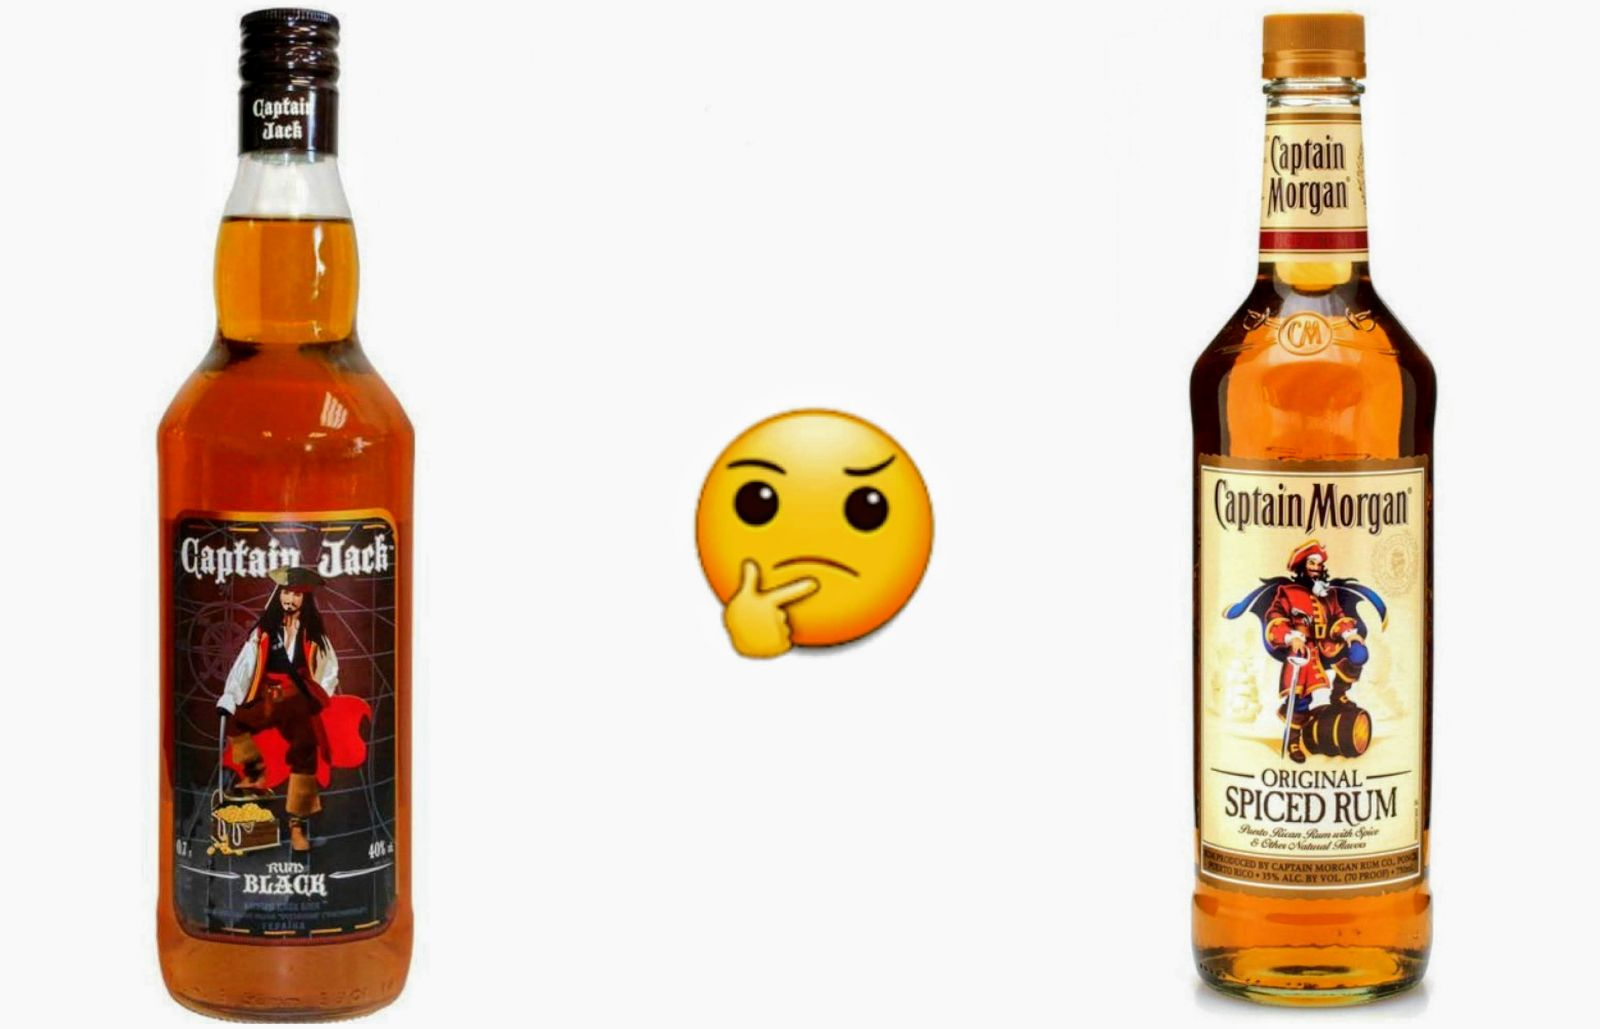 Captain Jack против Captain Morgan. Коллаж: Ракурс